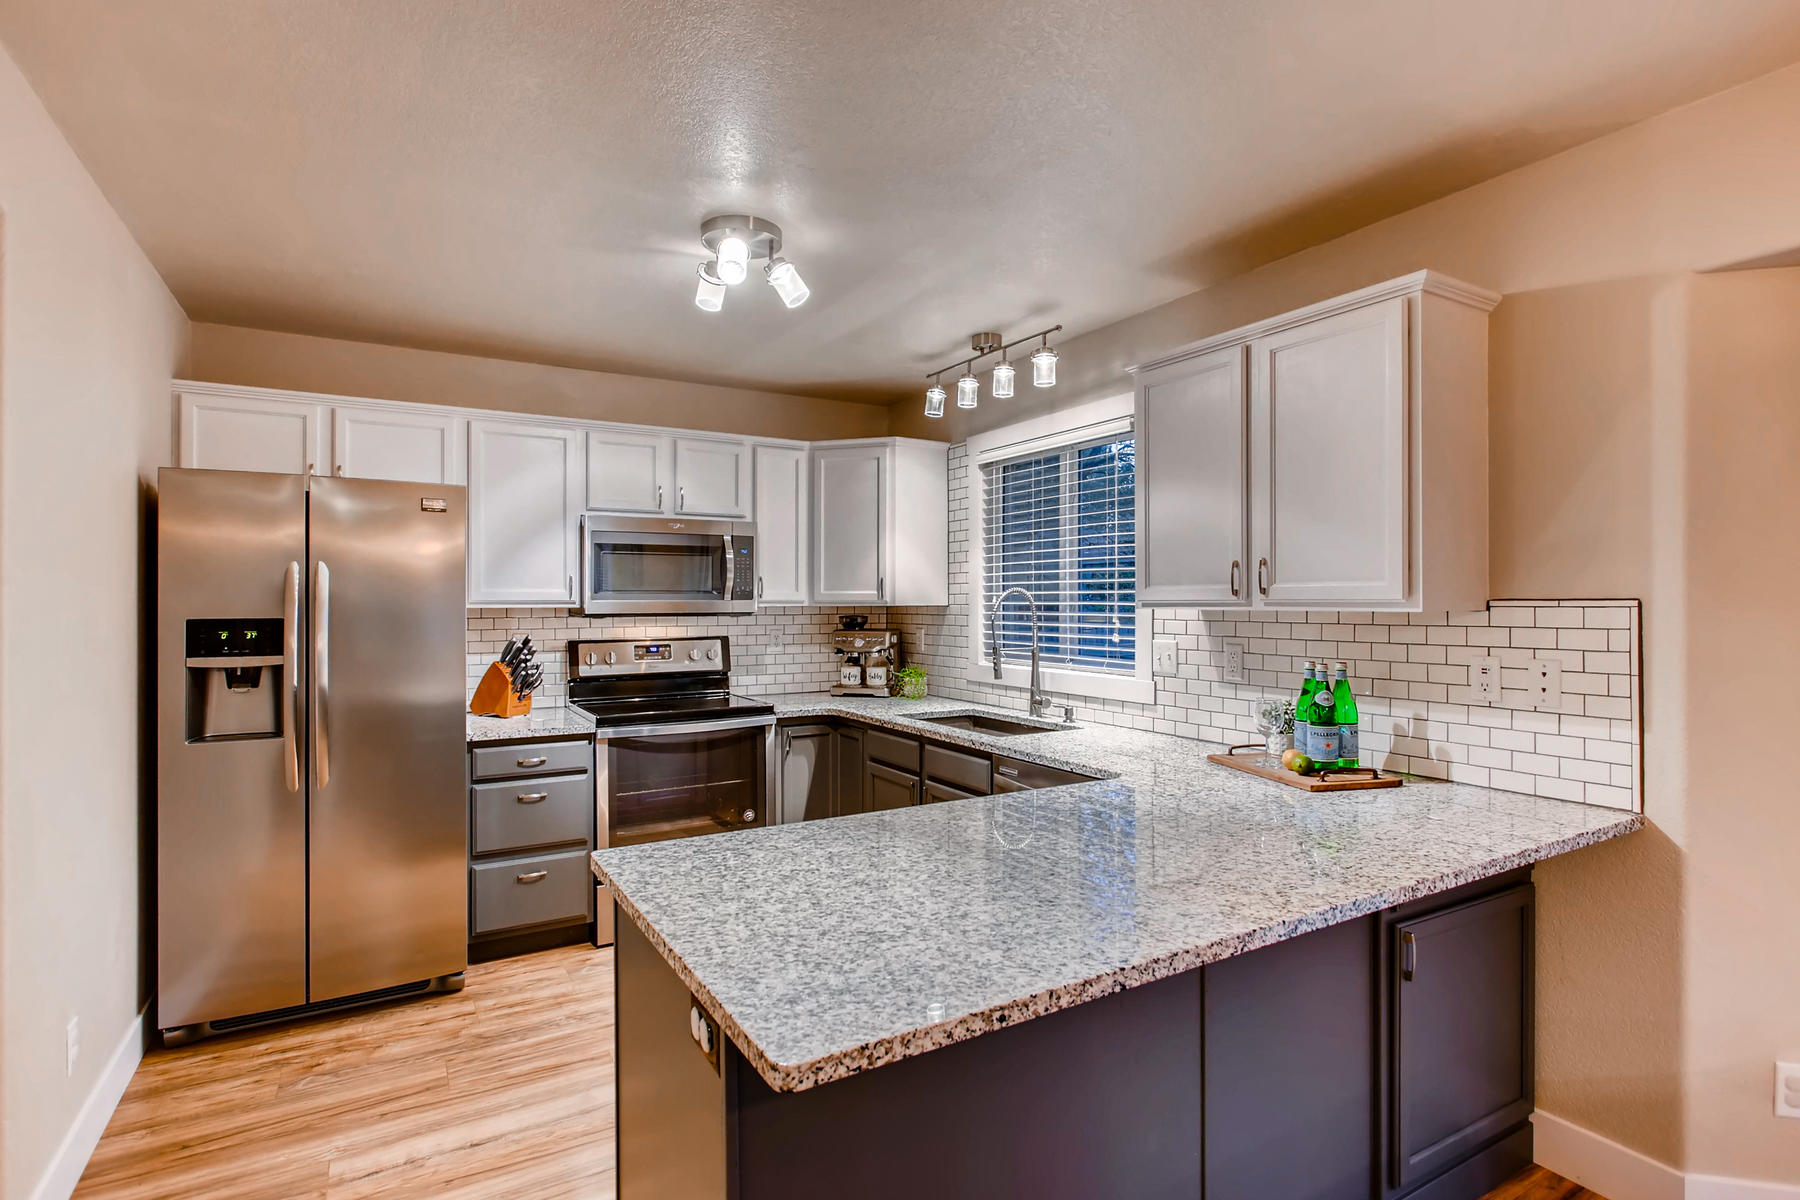 New Kitchen with Refinished Cabinets, Granite Countertops, SS Appliances & Backsplash